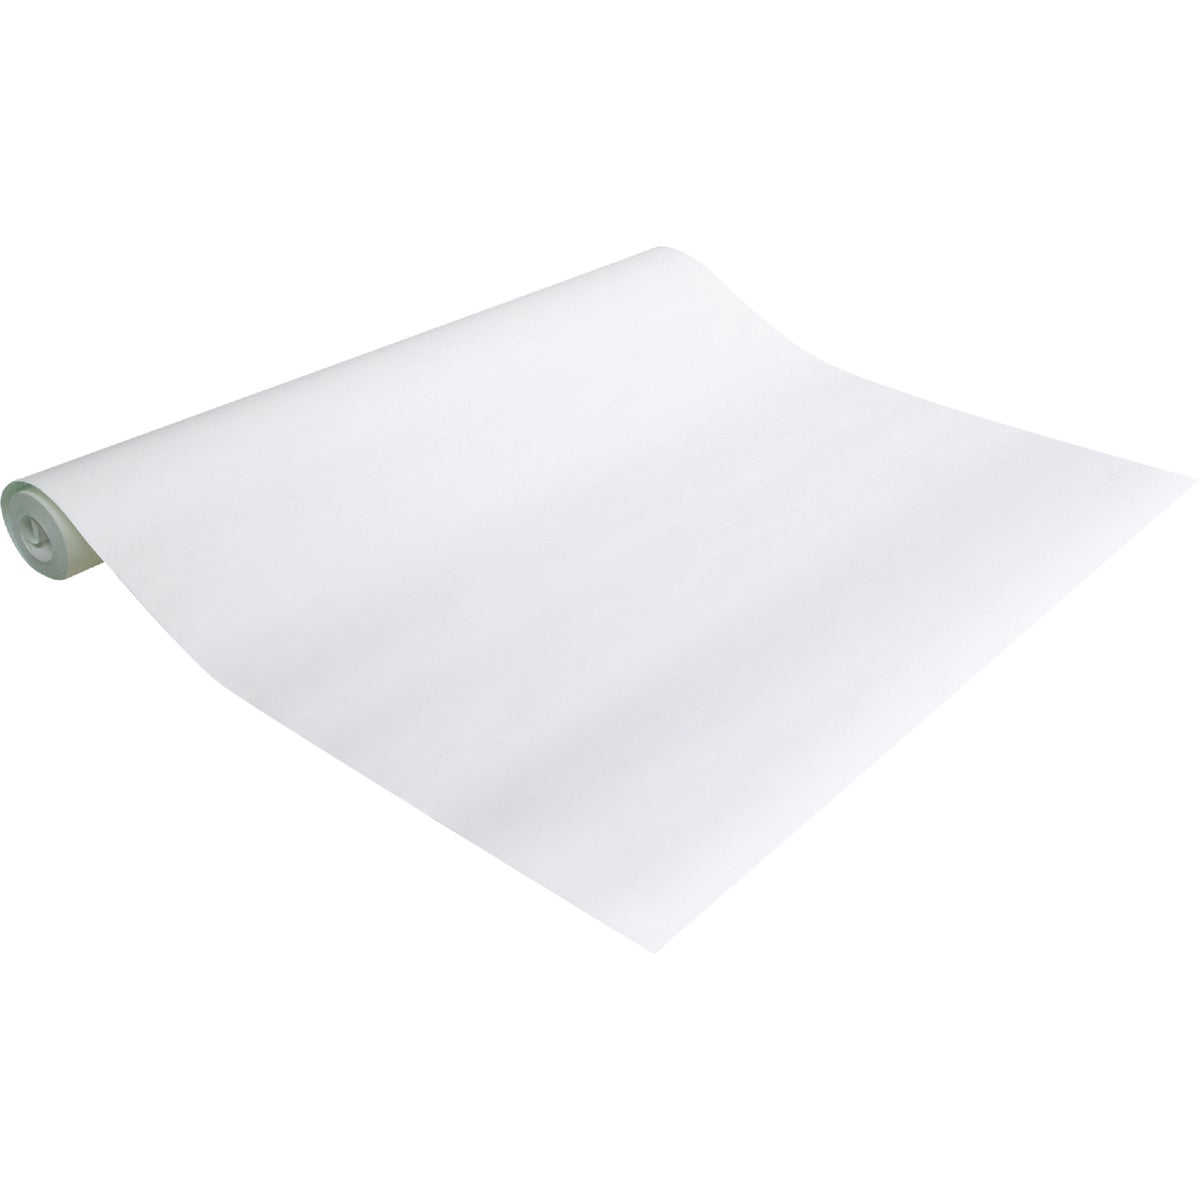 SOLID WHT CONTACT PAPER - 09F-C9953-01 by Kittrich Corp